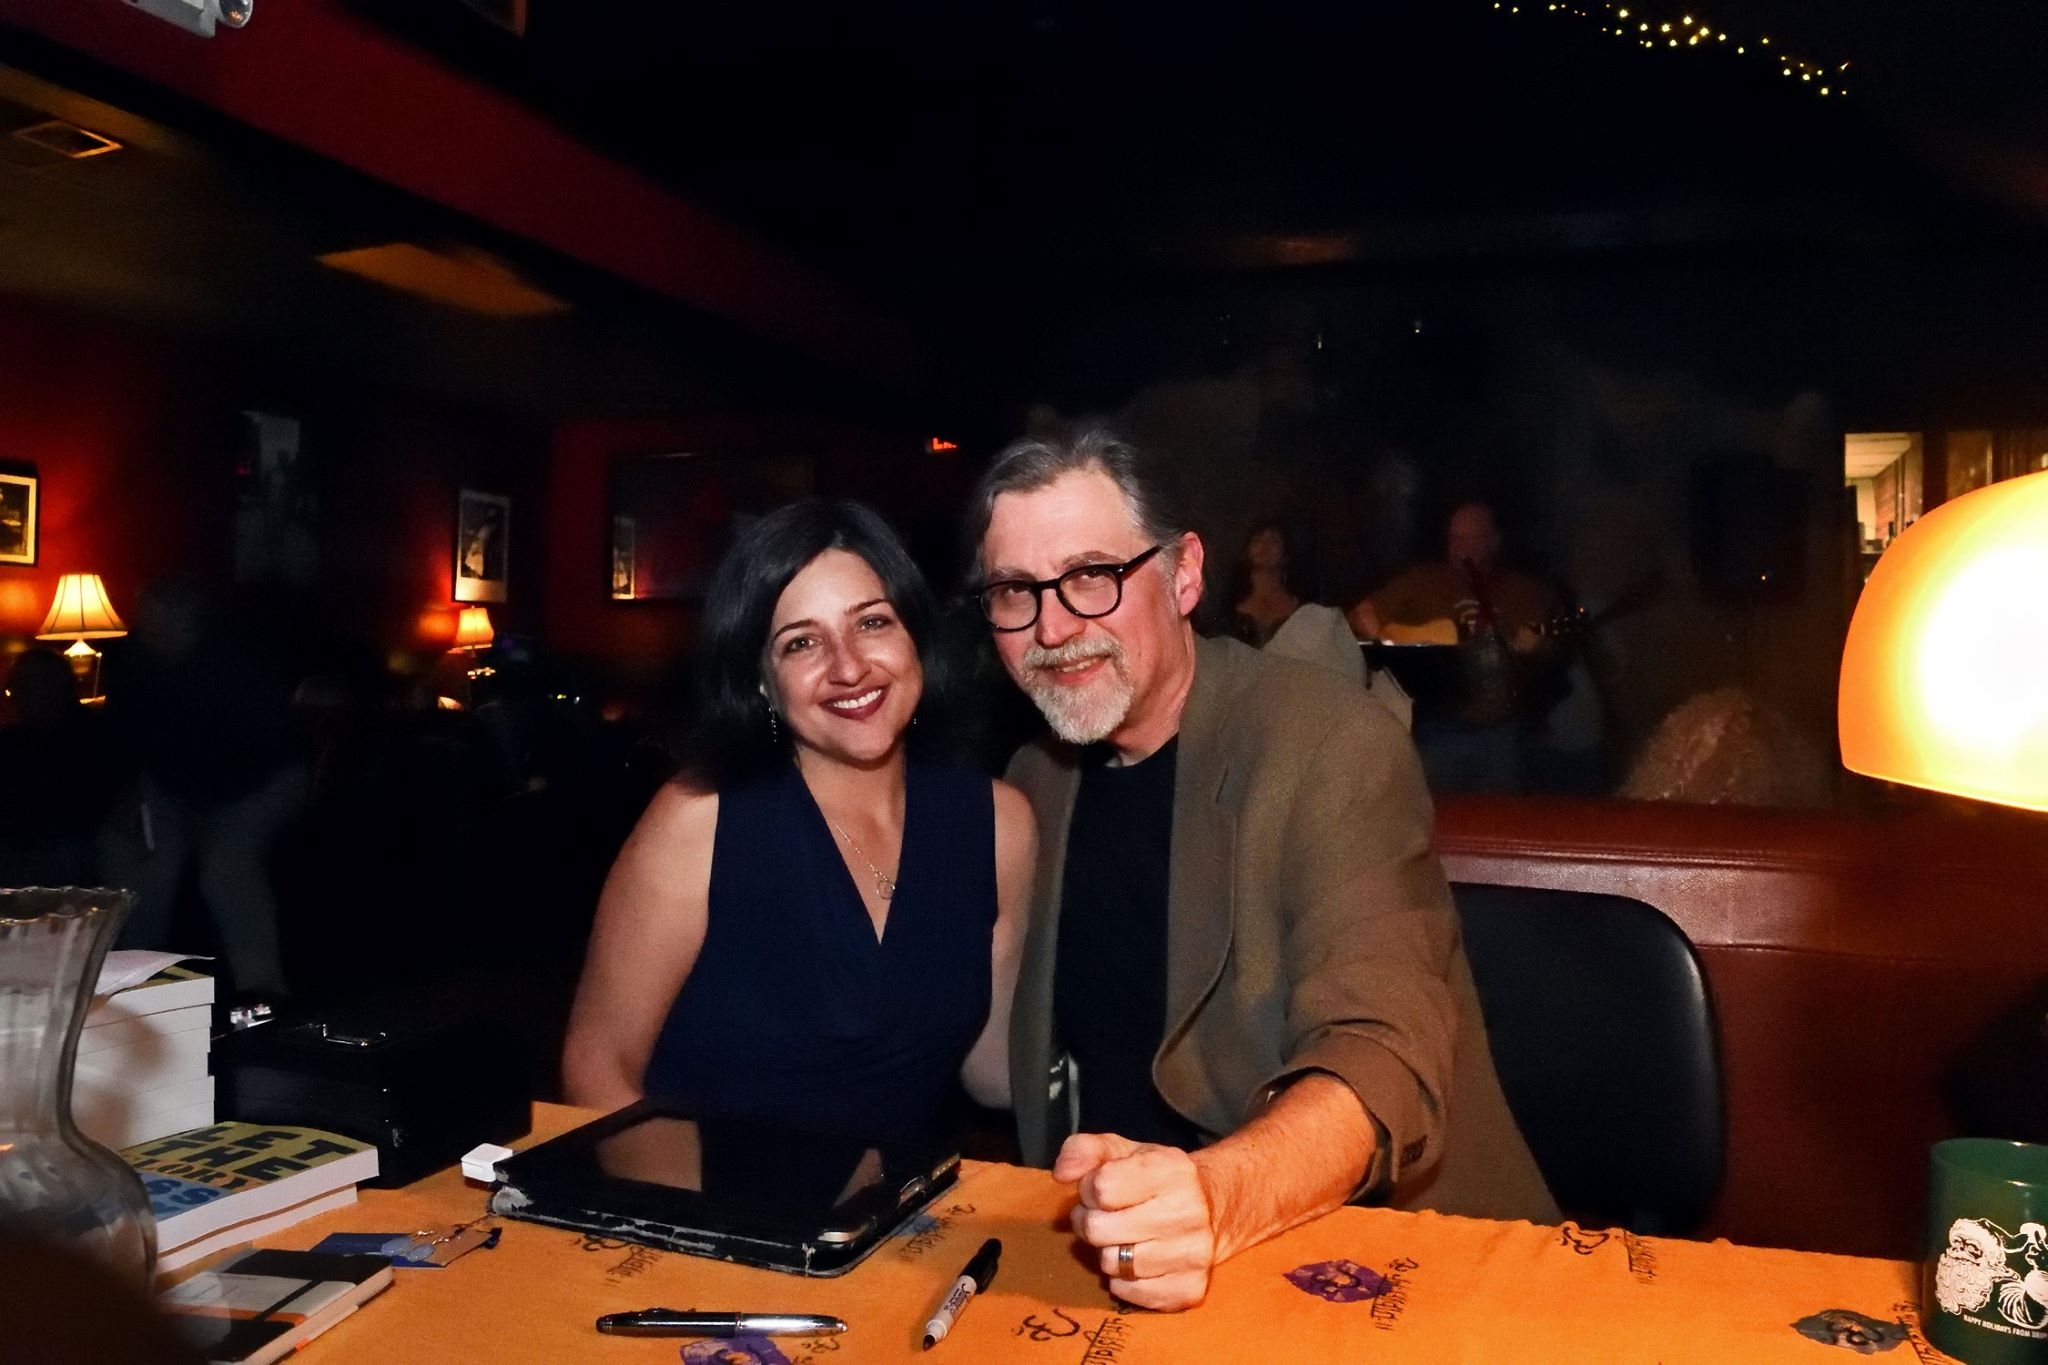 The author and his publication collaborator, Catherine A. Shuler.